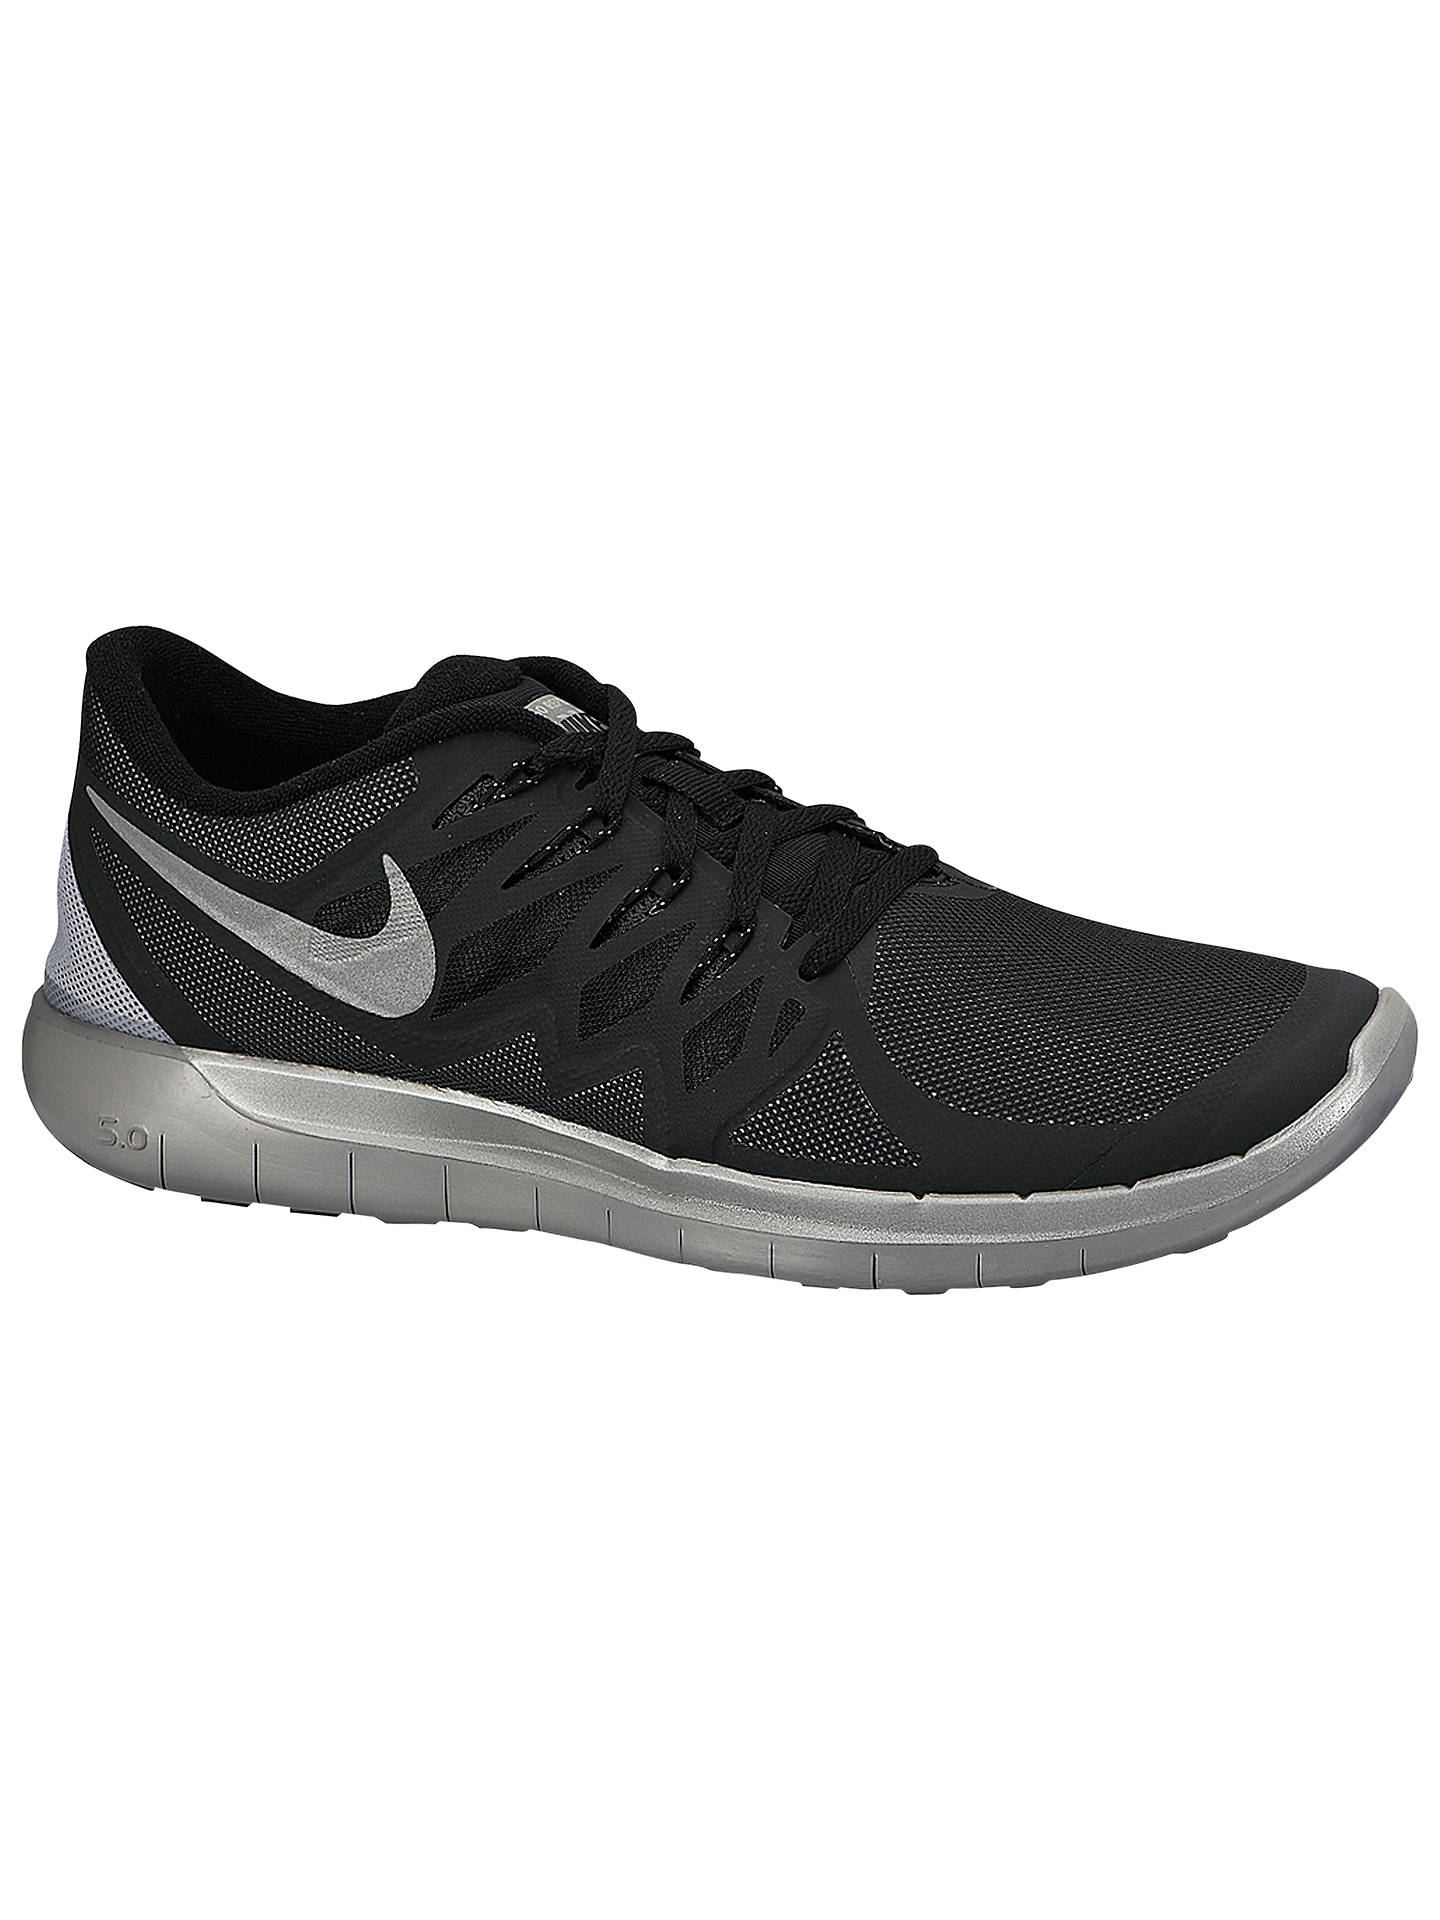 buy online bbd1c 3b27b Buy Nike Free 5.0 Flash Men s Running Shoes, Black Reflective Silver, 7  Online ...